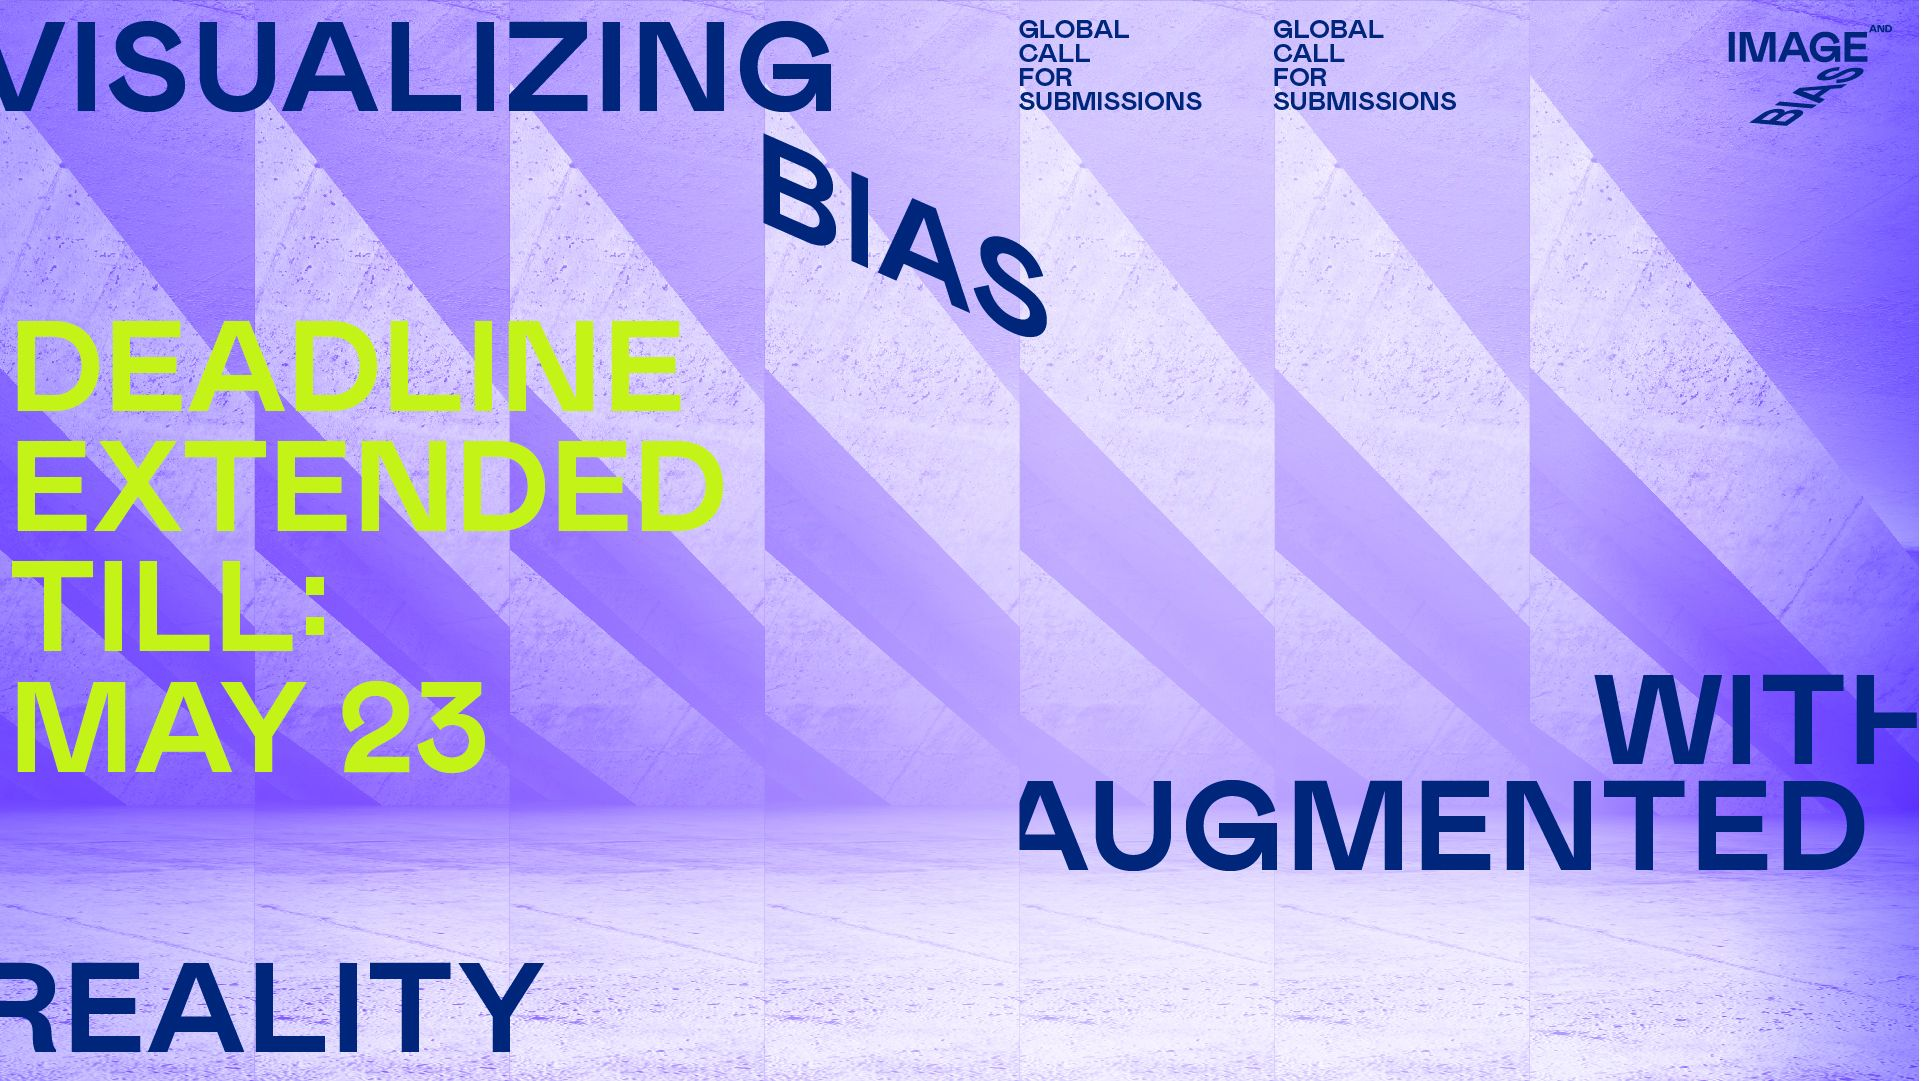 a purplish, distorted image of an open space with information about the Visualizing Bias open call.